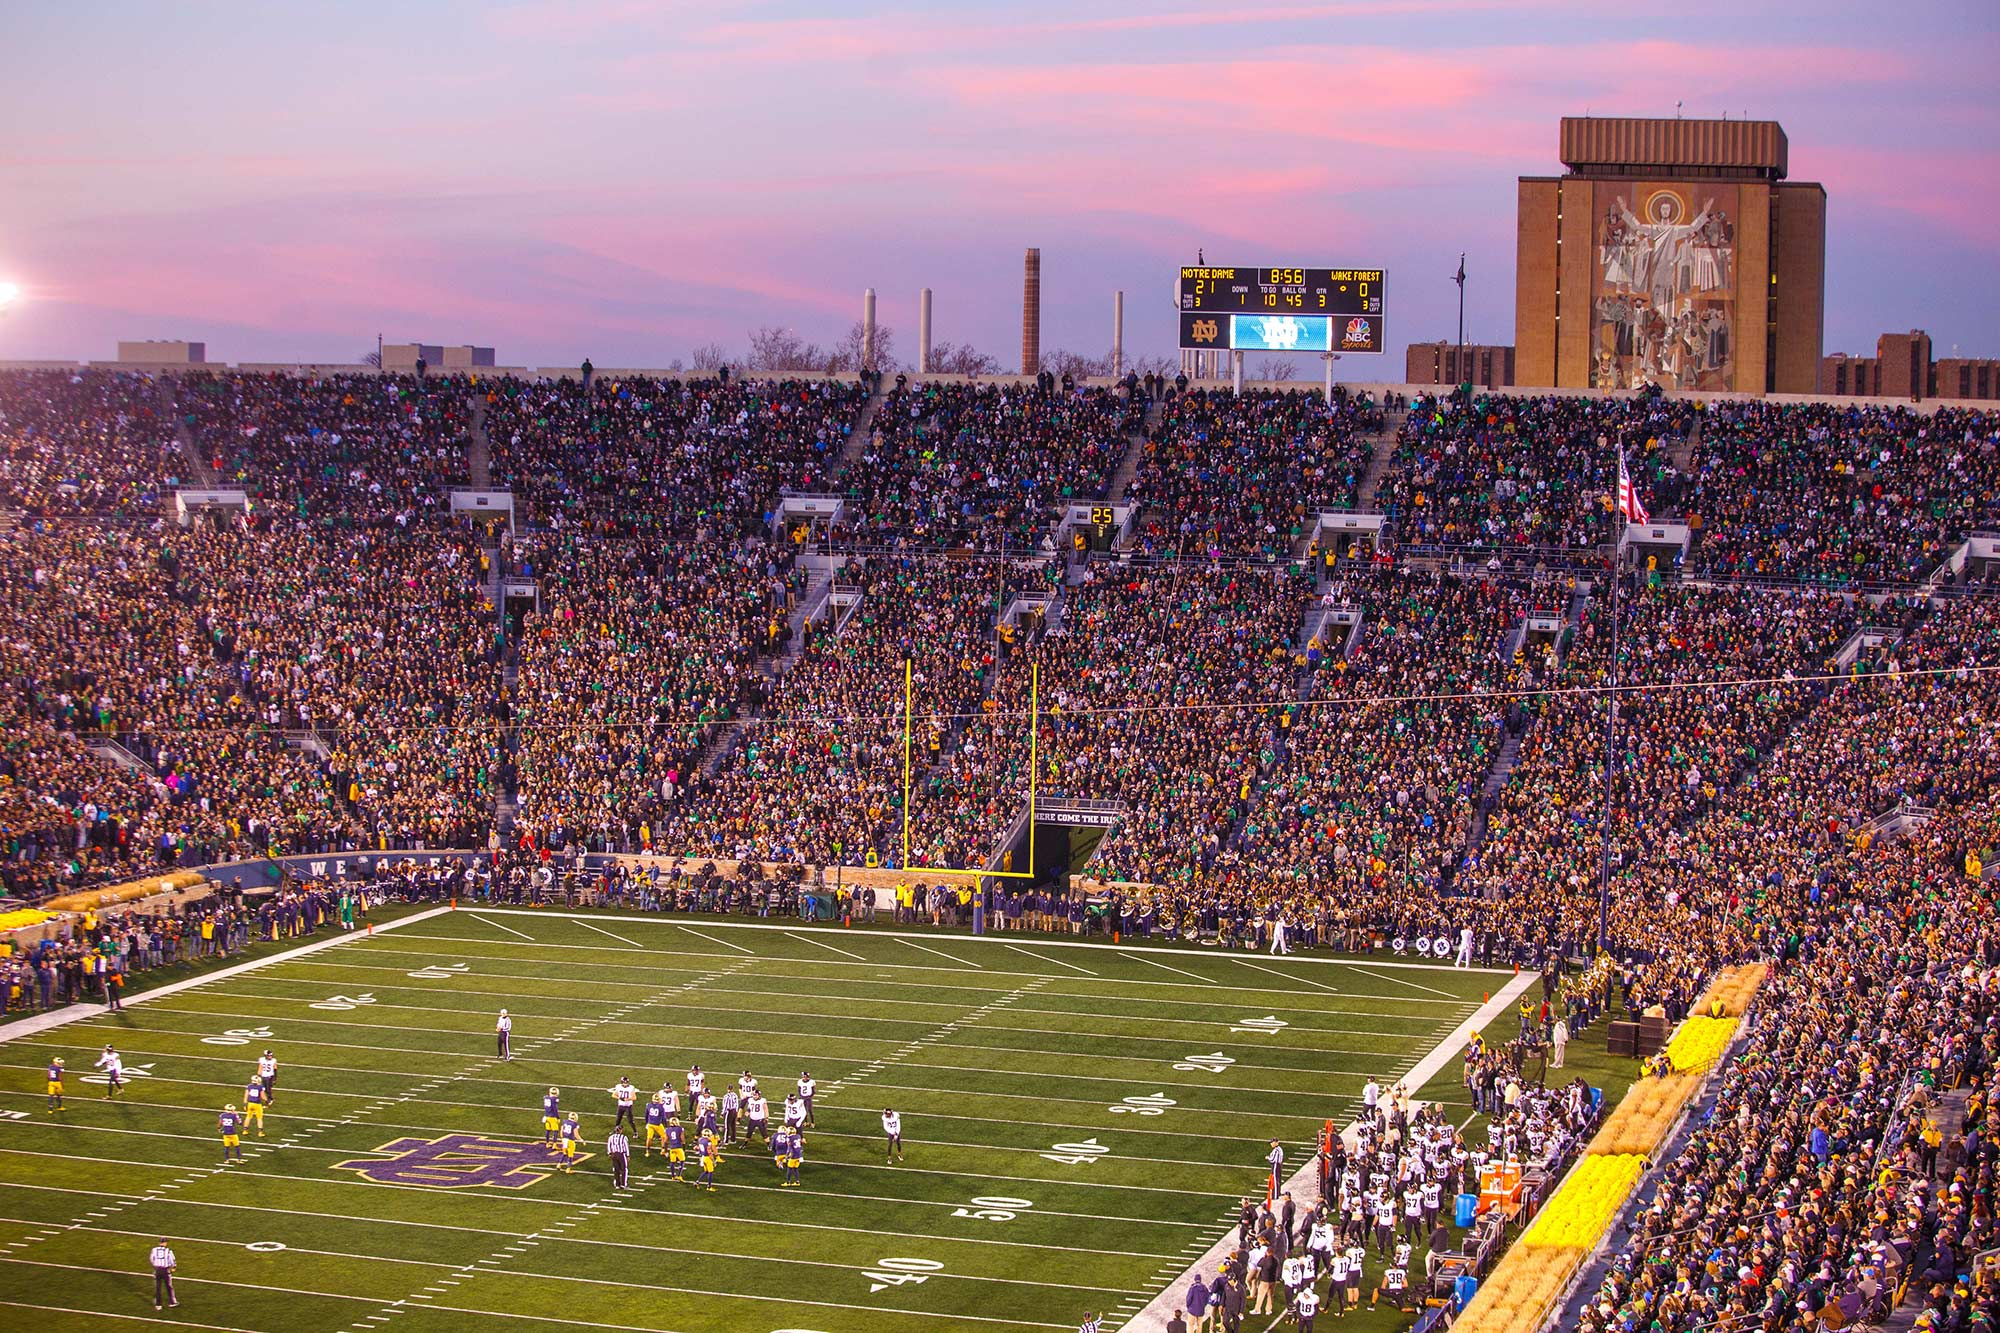 Notre Dame Stadium, South Bend, IN - 11/14